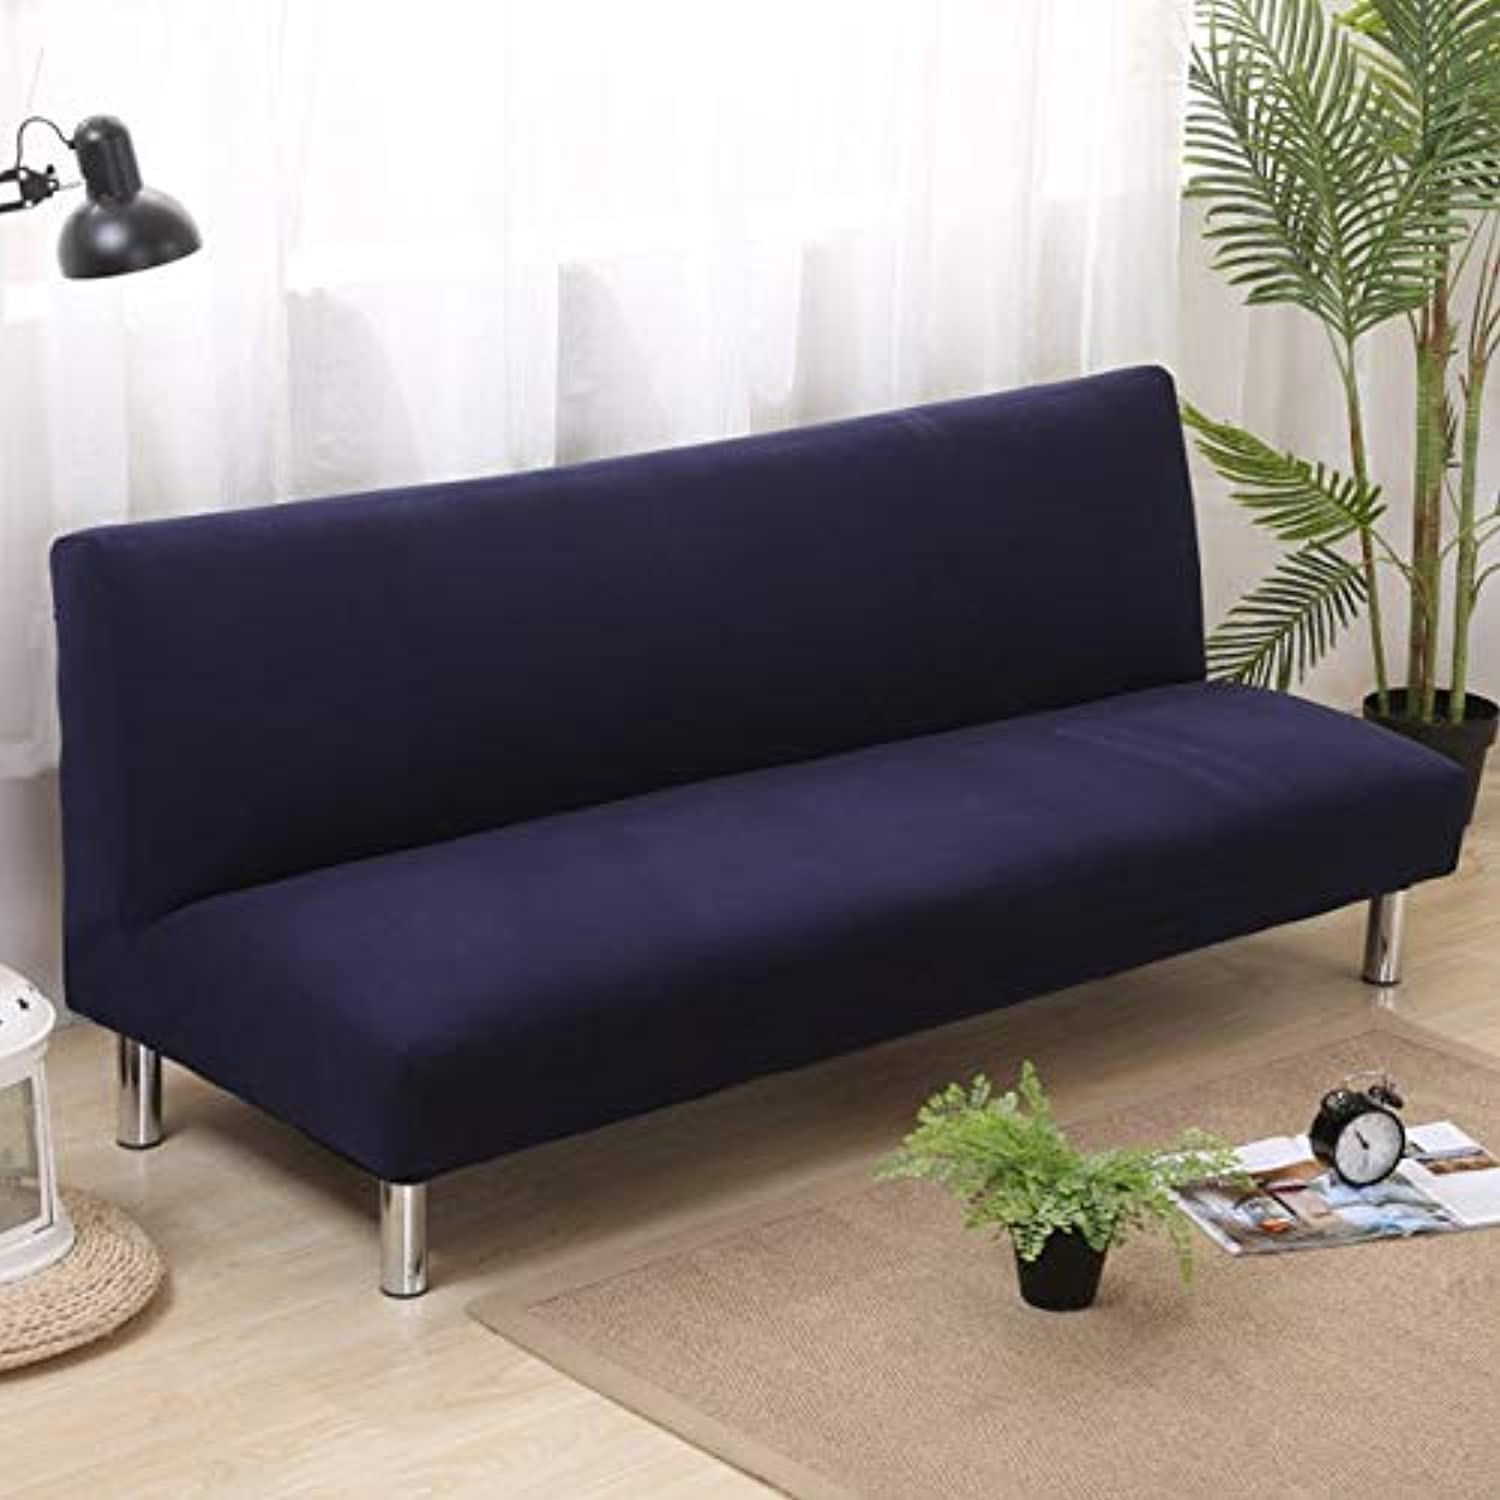 Farmerly Modern Without Armrest Sofa Cover Multifunction Sofa Slipcover Big Elastic Fabric Anti-Mite 160-210cm bluee Star Sofa Bed Covers   Navy bluee, 180-210cm